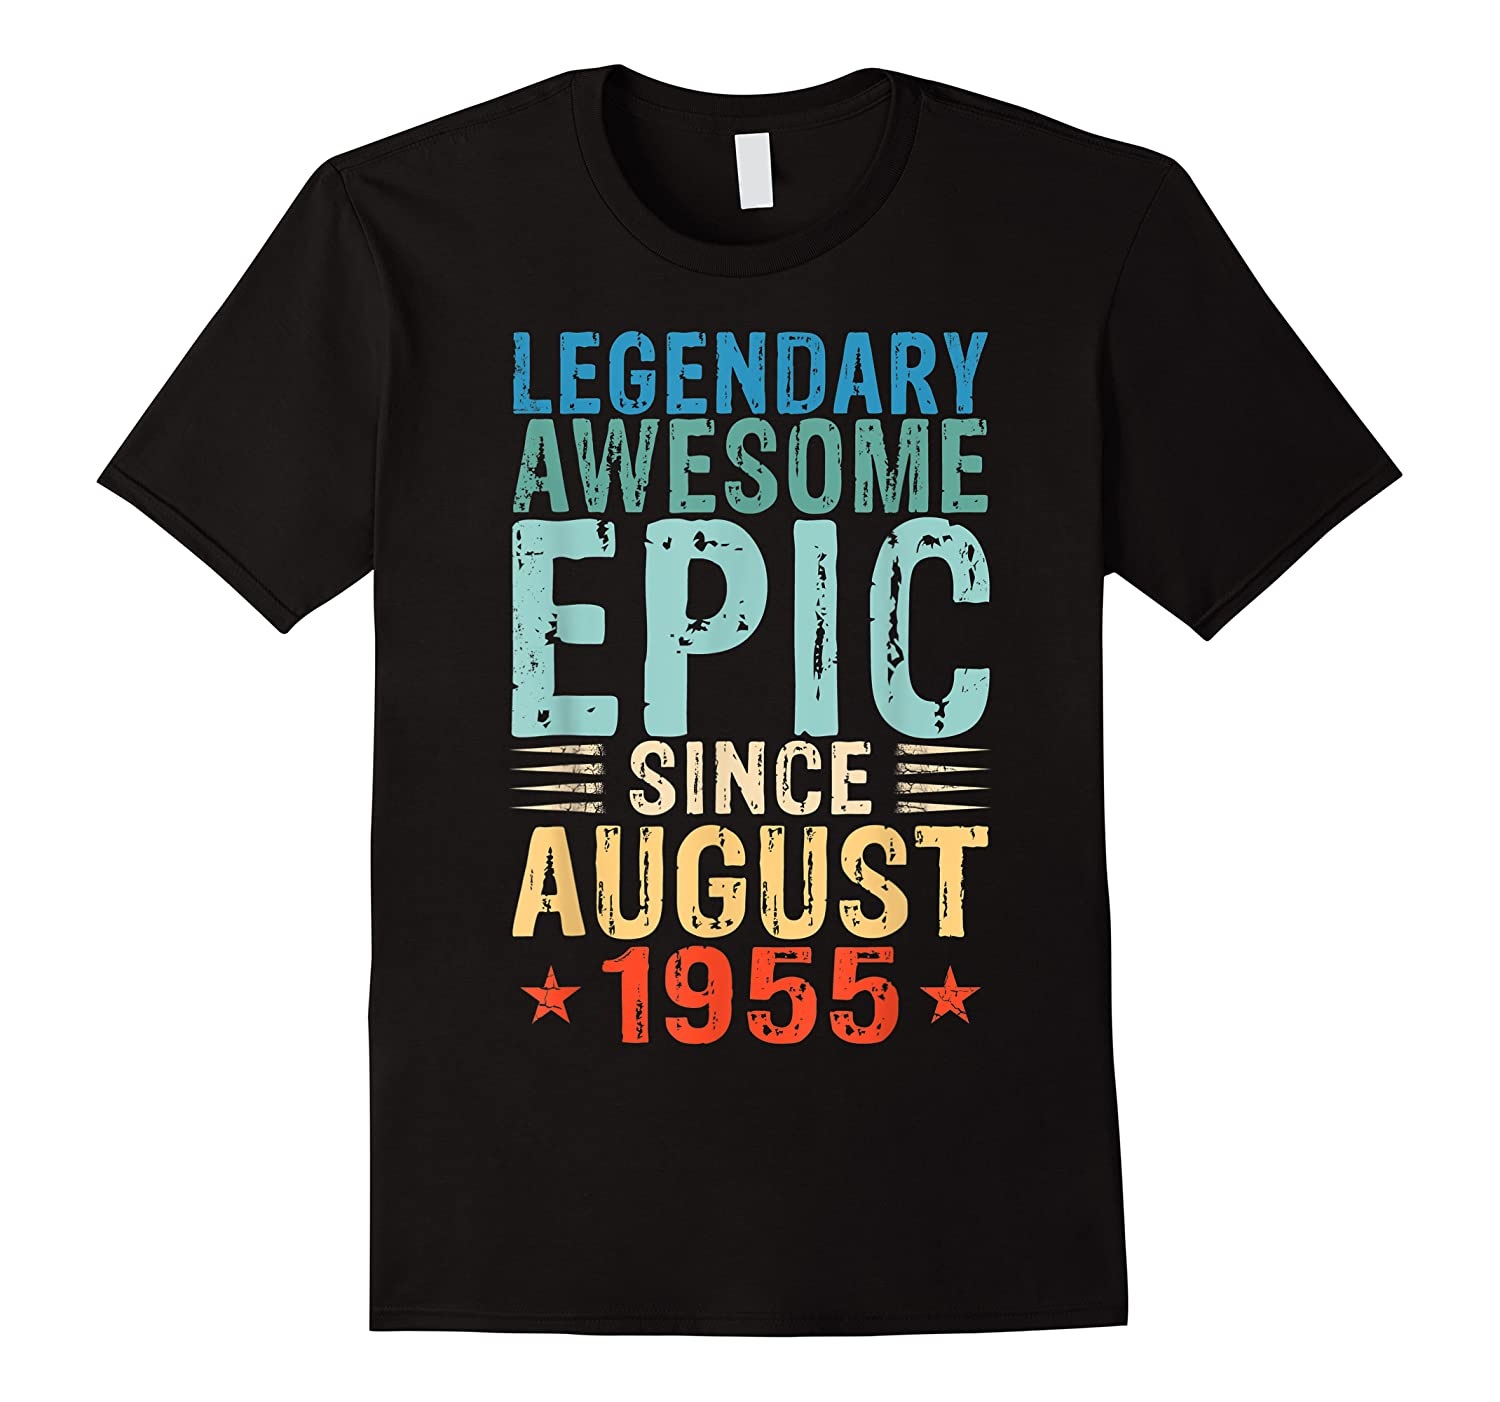 Legendary Awesome Epic Since August 1955 64 Years Old Shirt